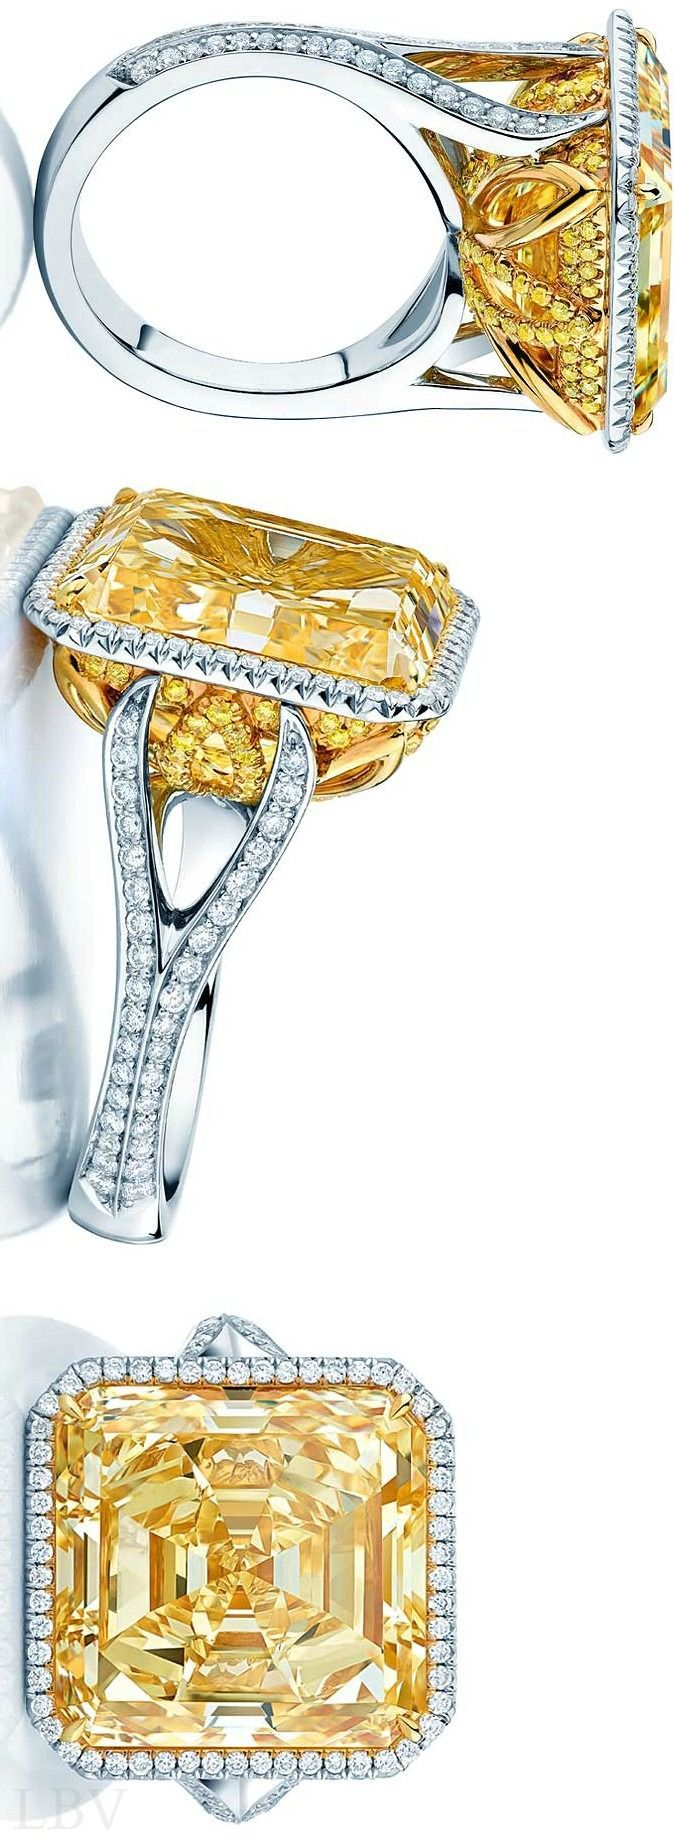 Albert's Jewelers maintains a large selection of Verragio Engagement Rings in Schererville, IN. Please visit our store, website, or contact us at 219-322-2700 regarding any Verragio Engagement Rings products. http://www.albertsjewelers.com/engagement-rings